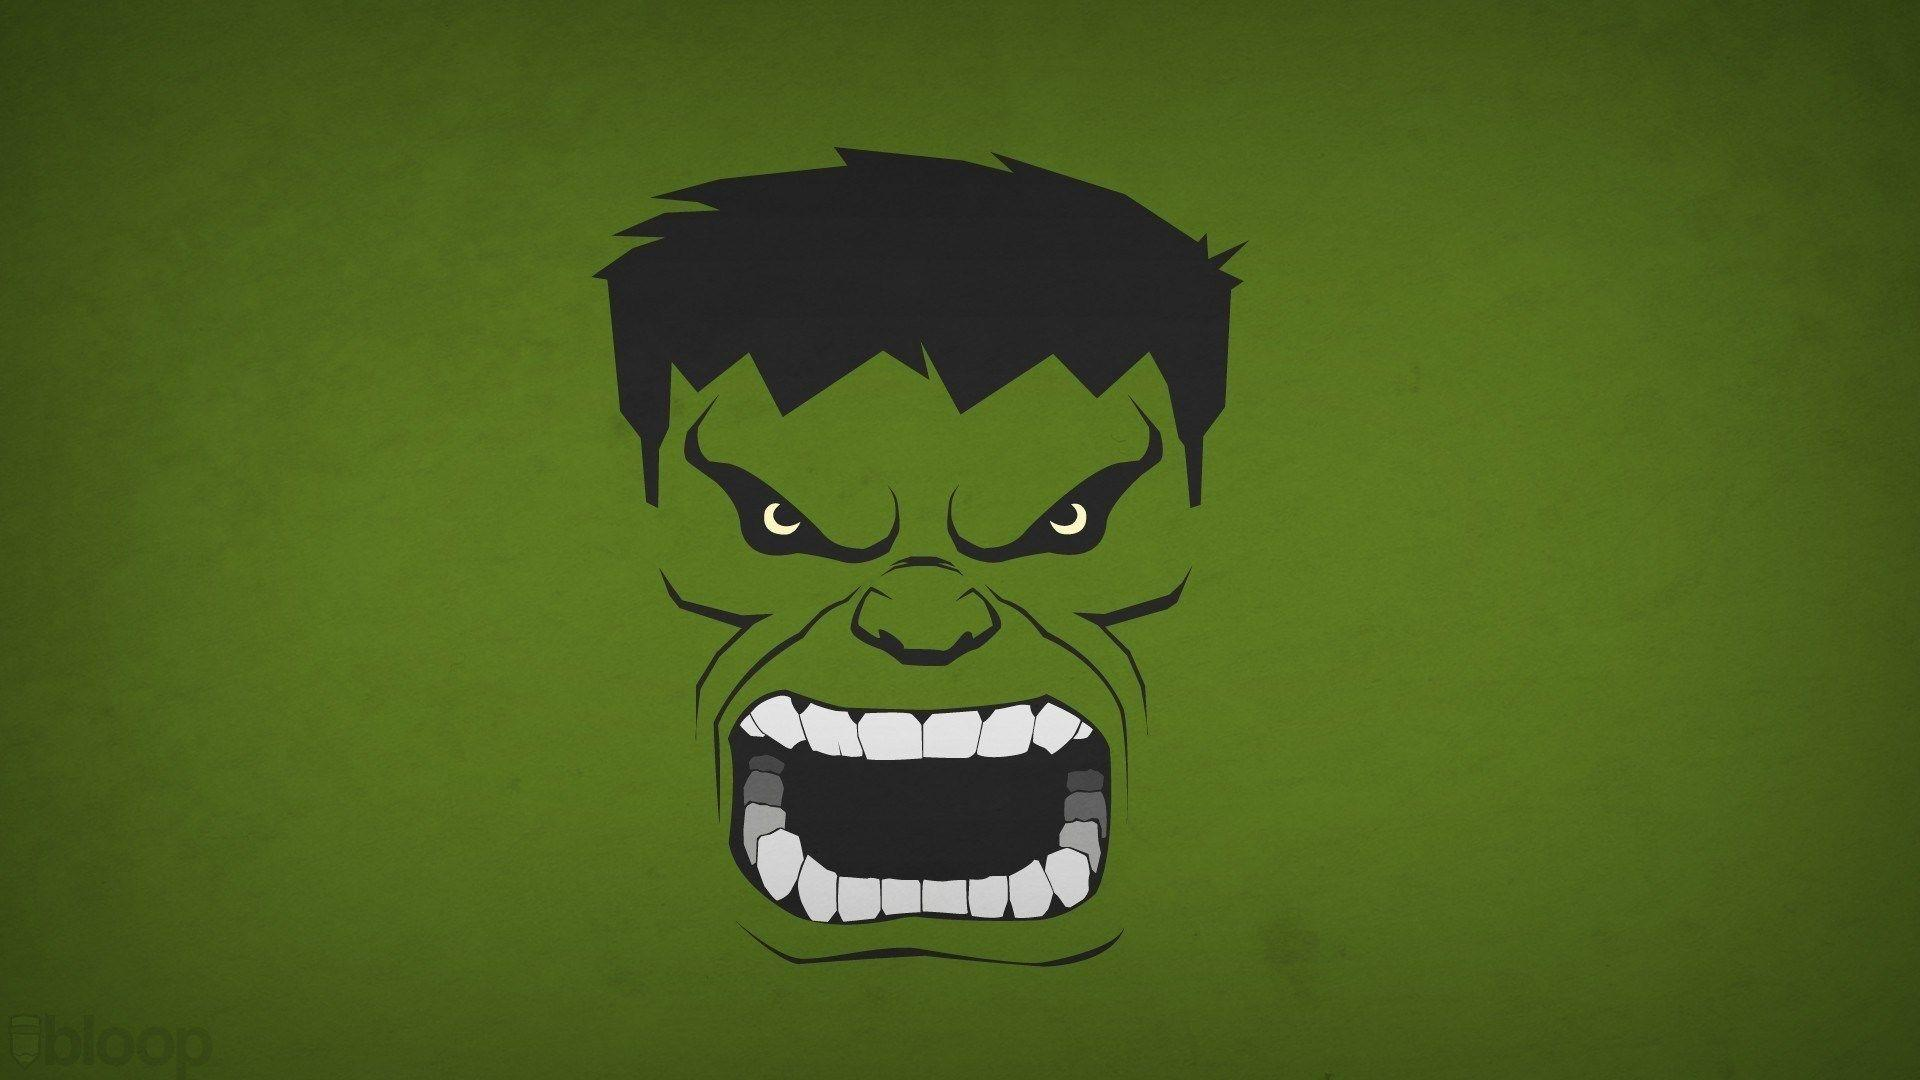 Hulk Cartoon 4k Wallpapers Top Free Hulk Cartoon 4k Backgrounds